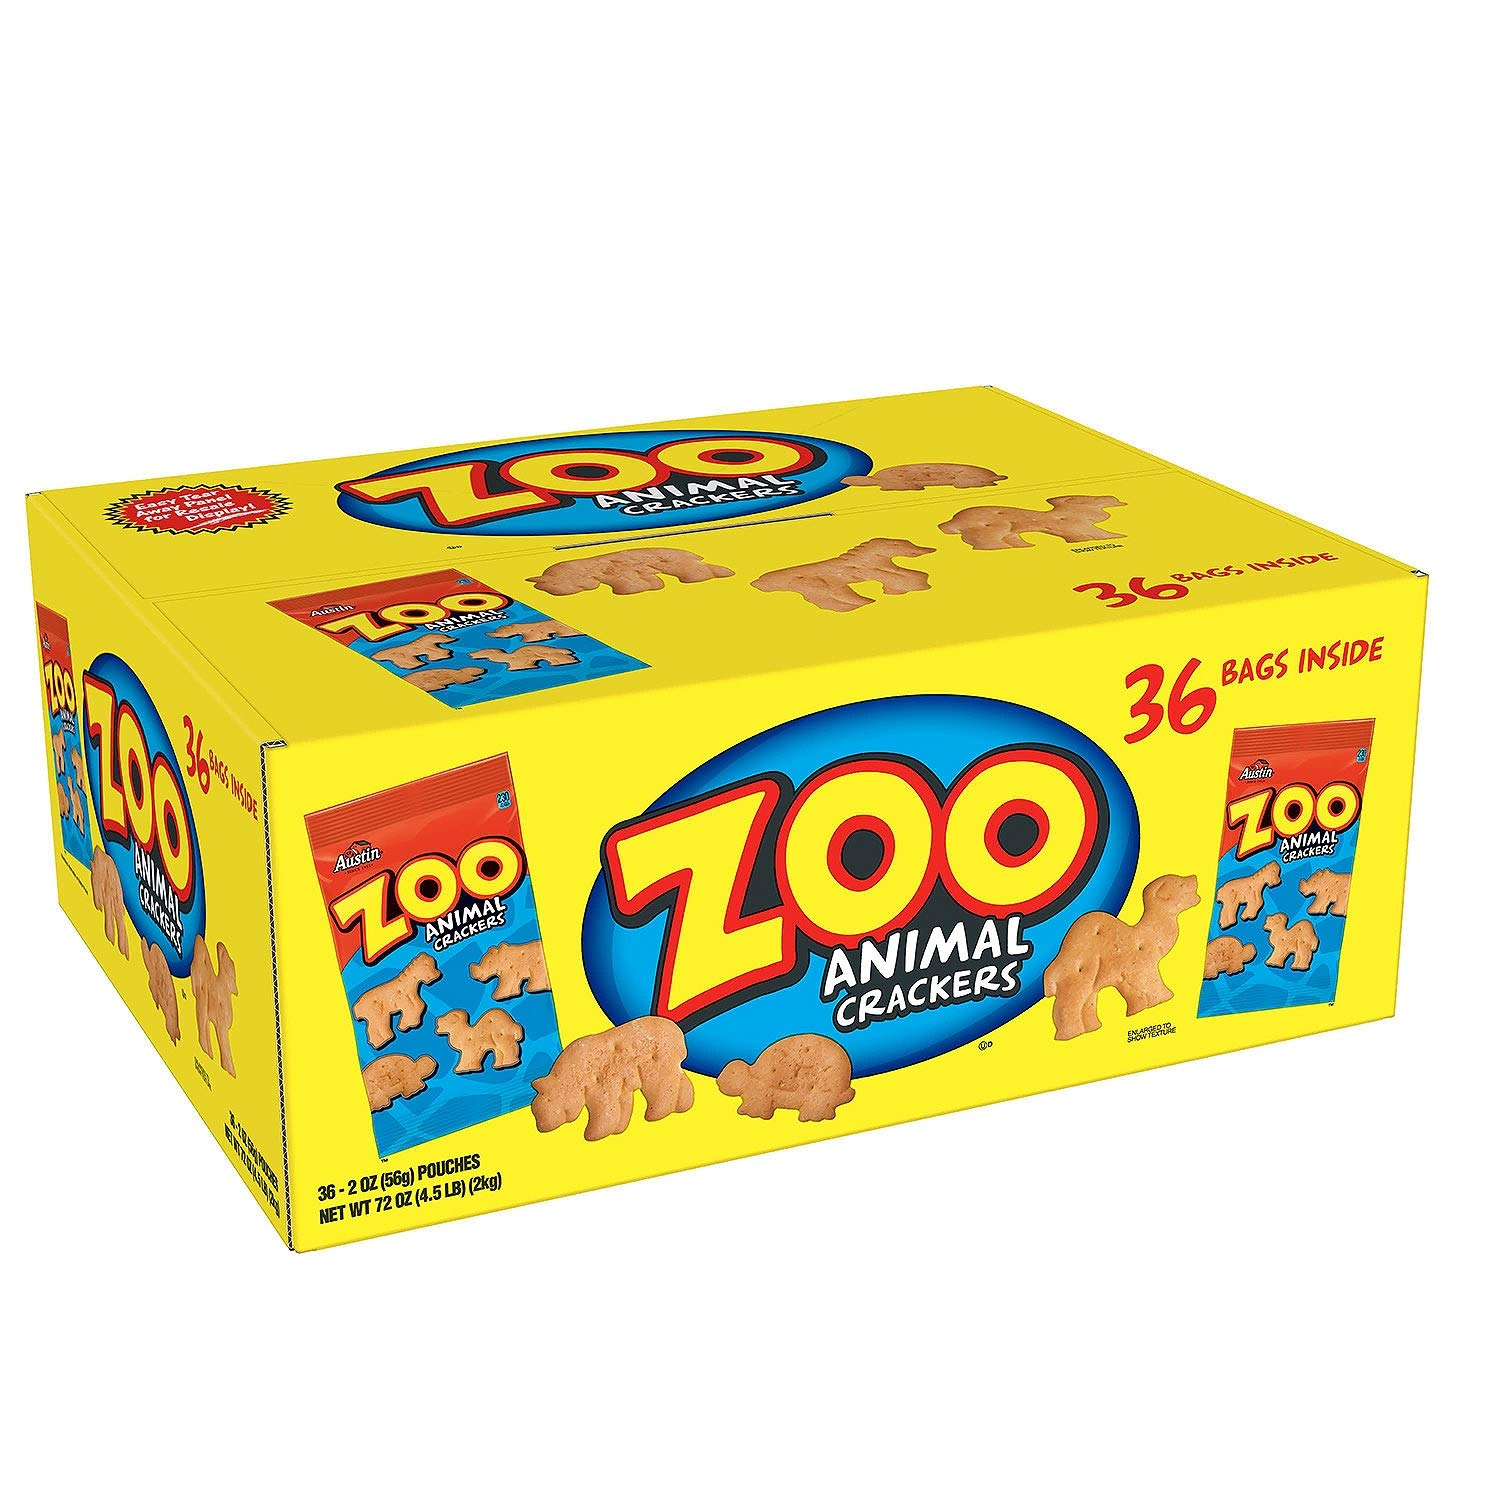 Austin Zoo Animal Crackers Financial sales sale 36 Individually Packages Oz Each of NEW before selling 2